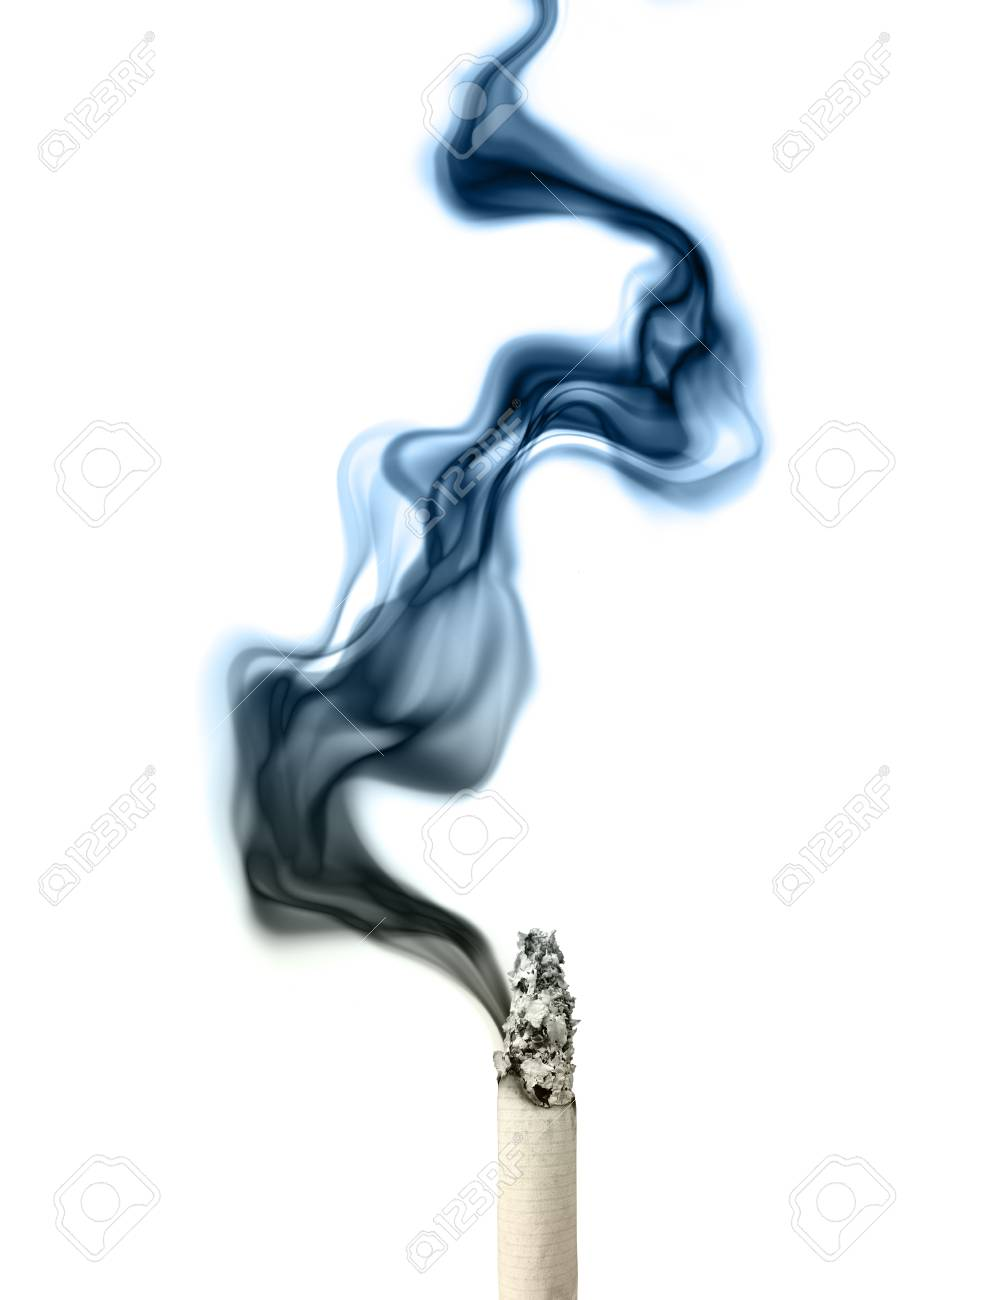 Smoking Cigarette Stock Photo - 3277235